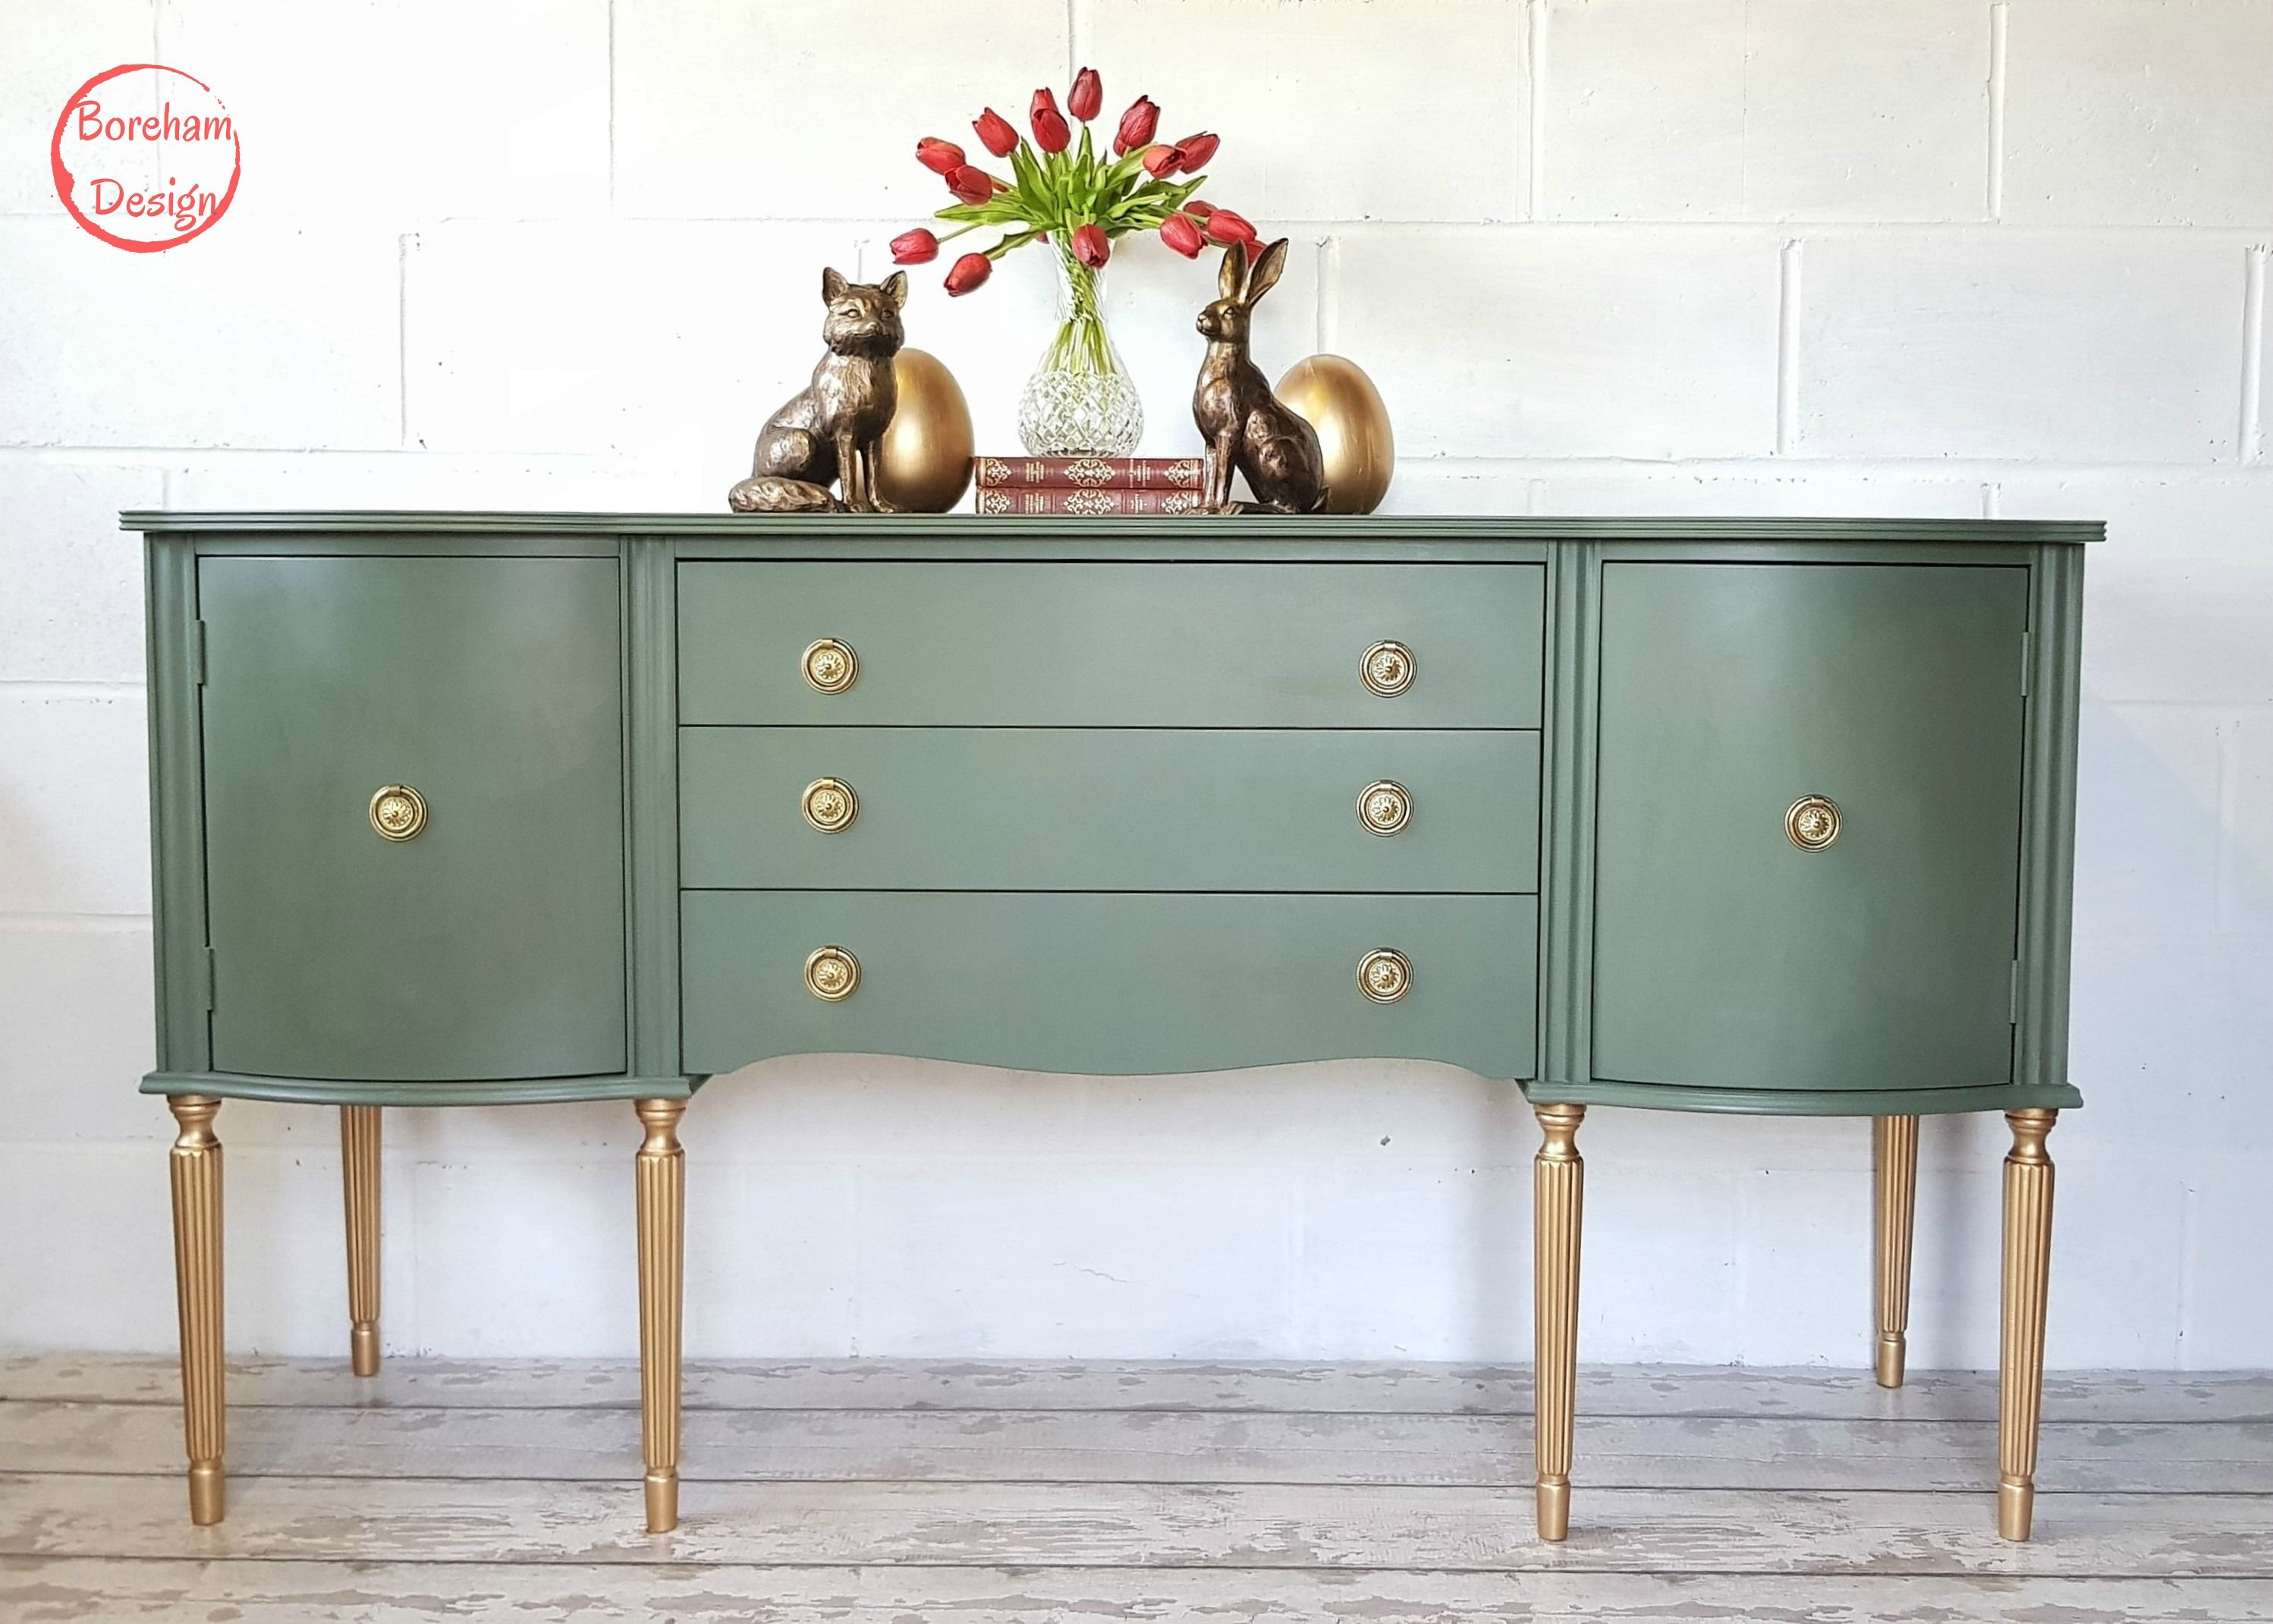 Upcycled Bow Fronted Sideboard in Bayberry Green. #fusion ...